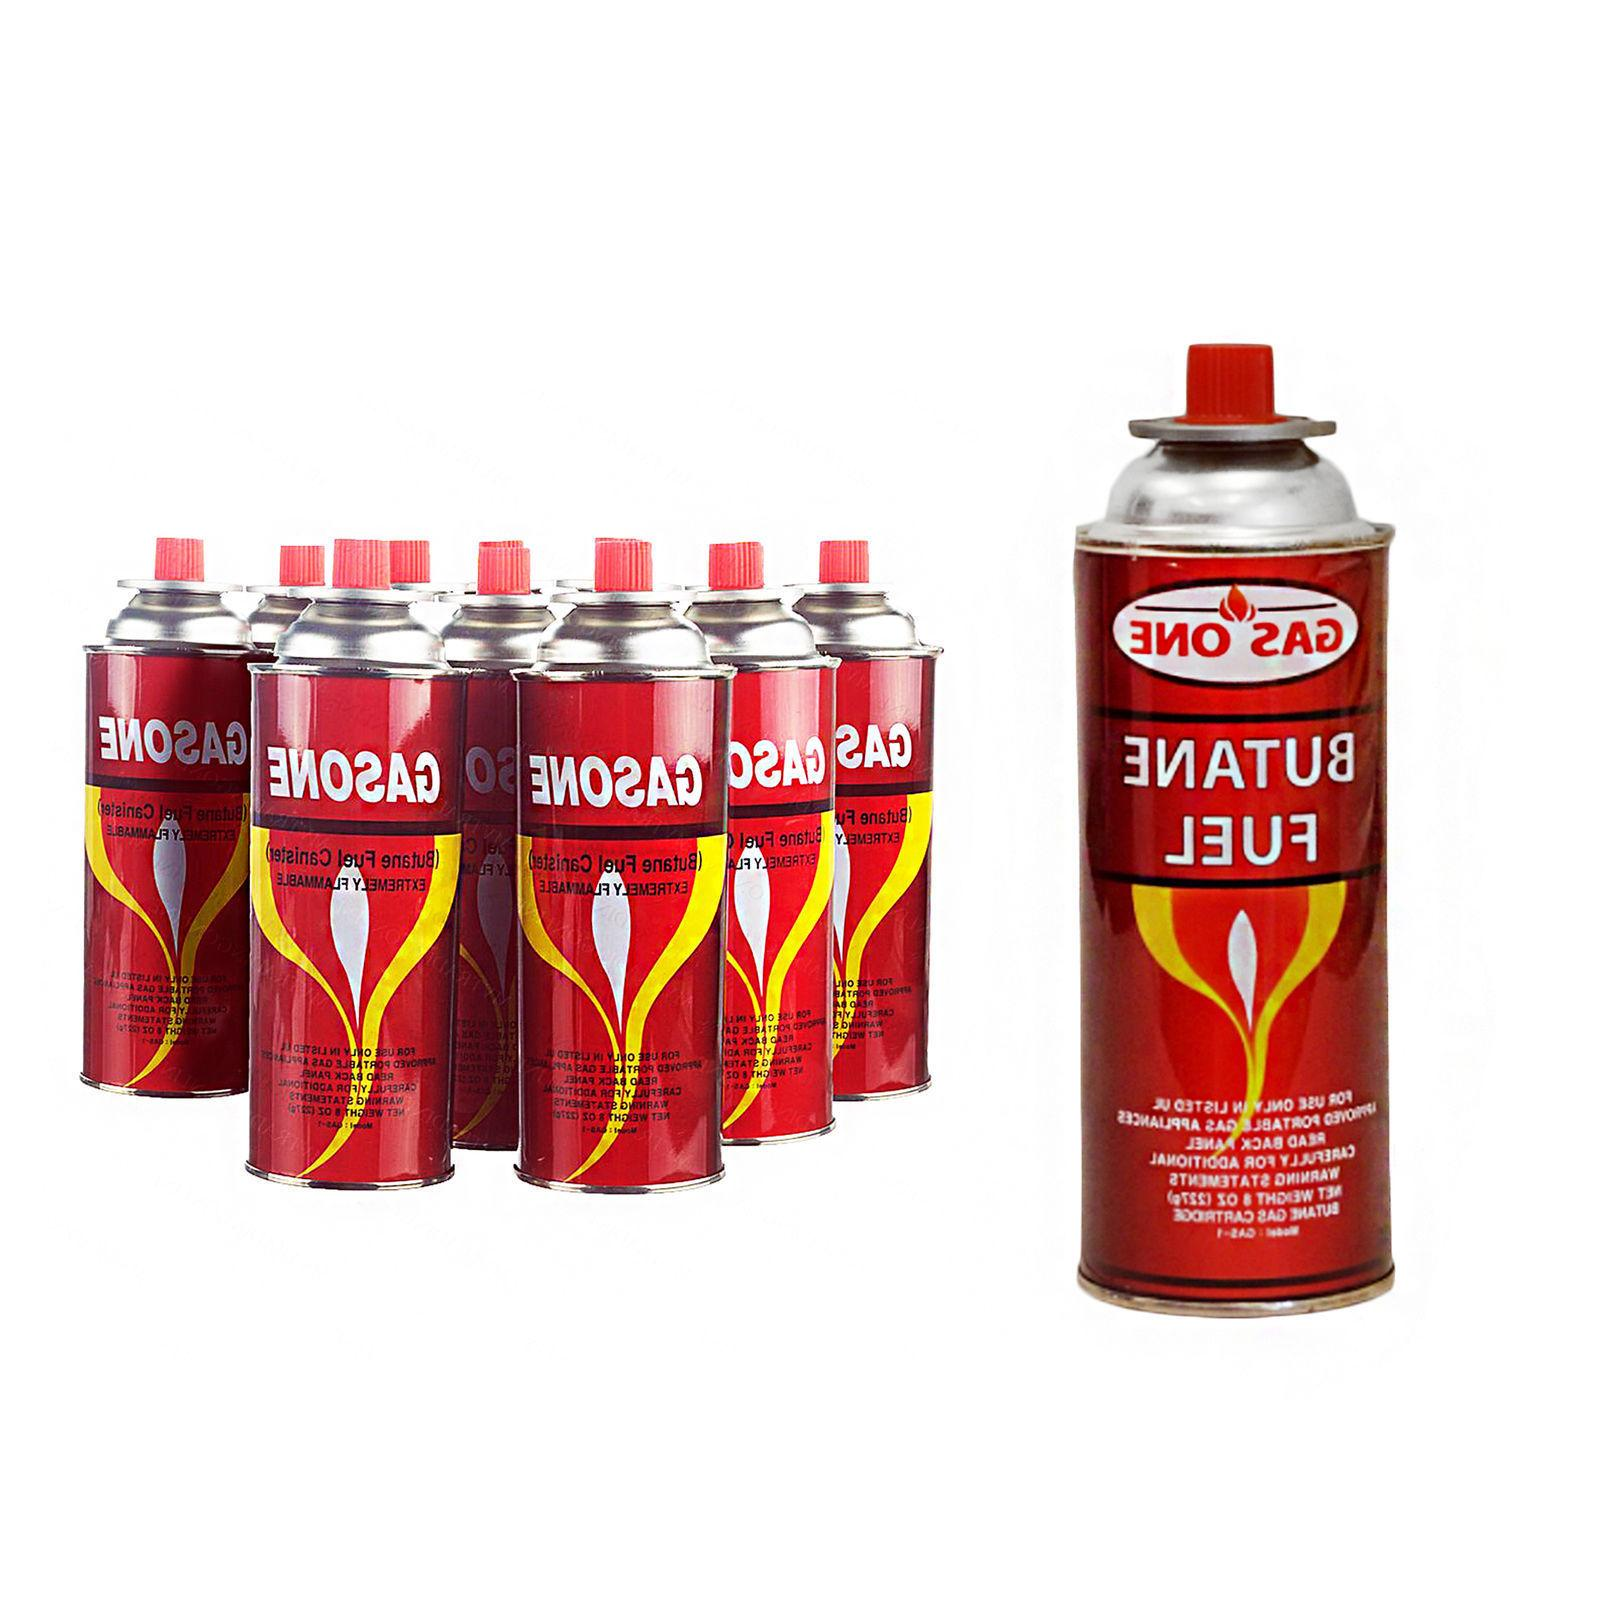 8 cans butane gas fuel canister 8oz